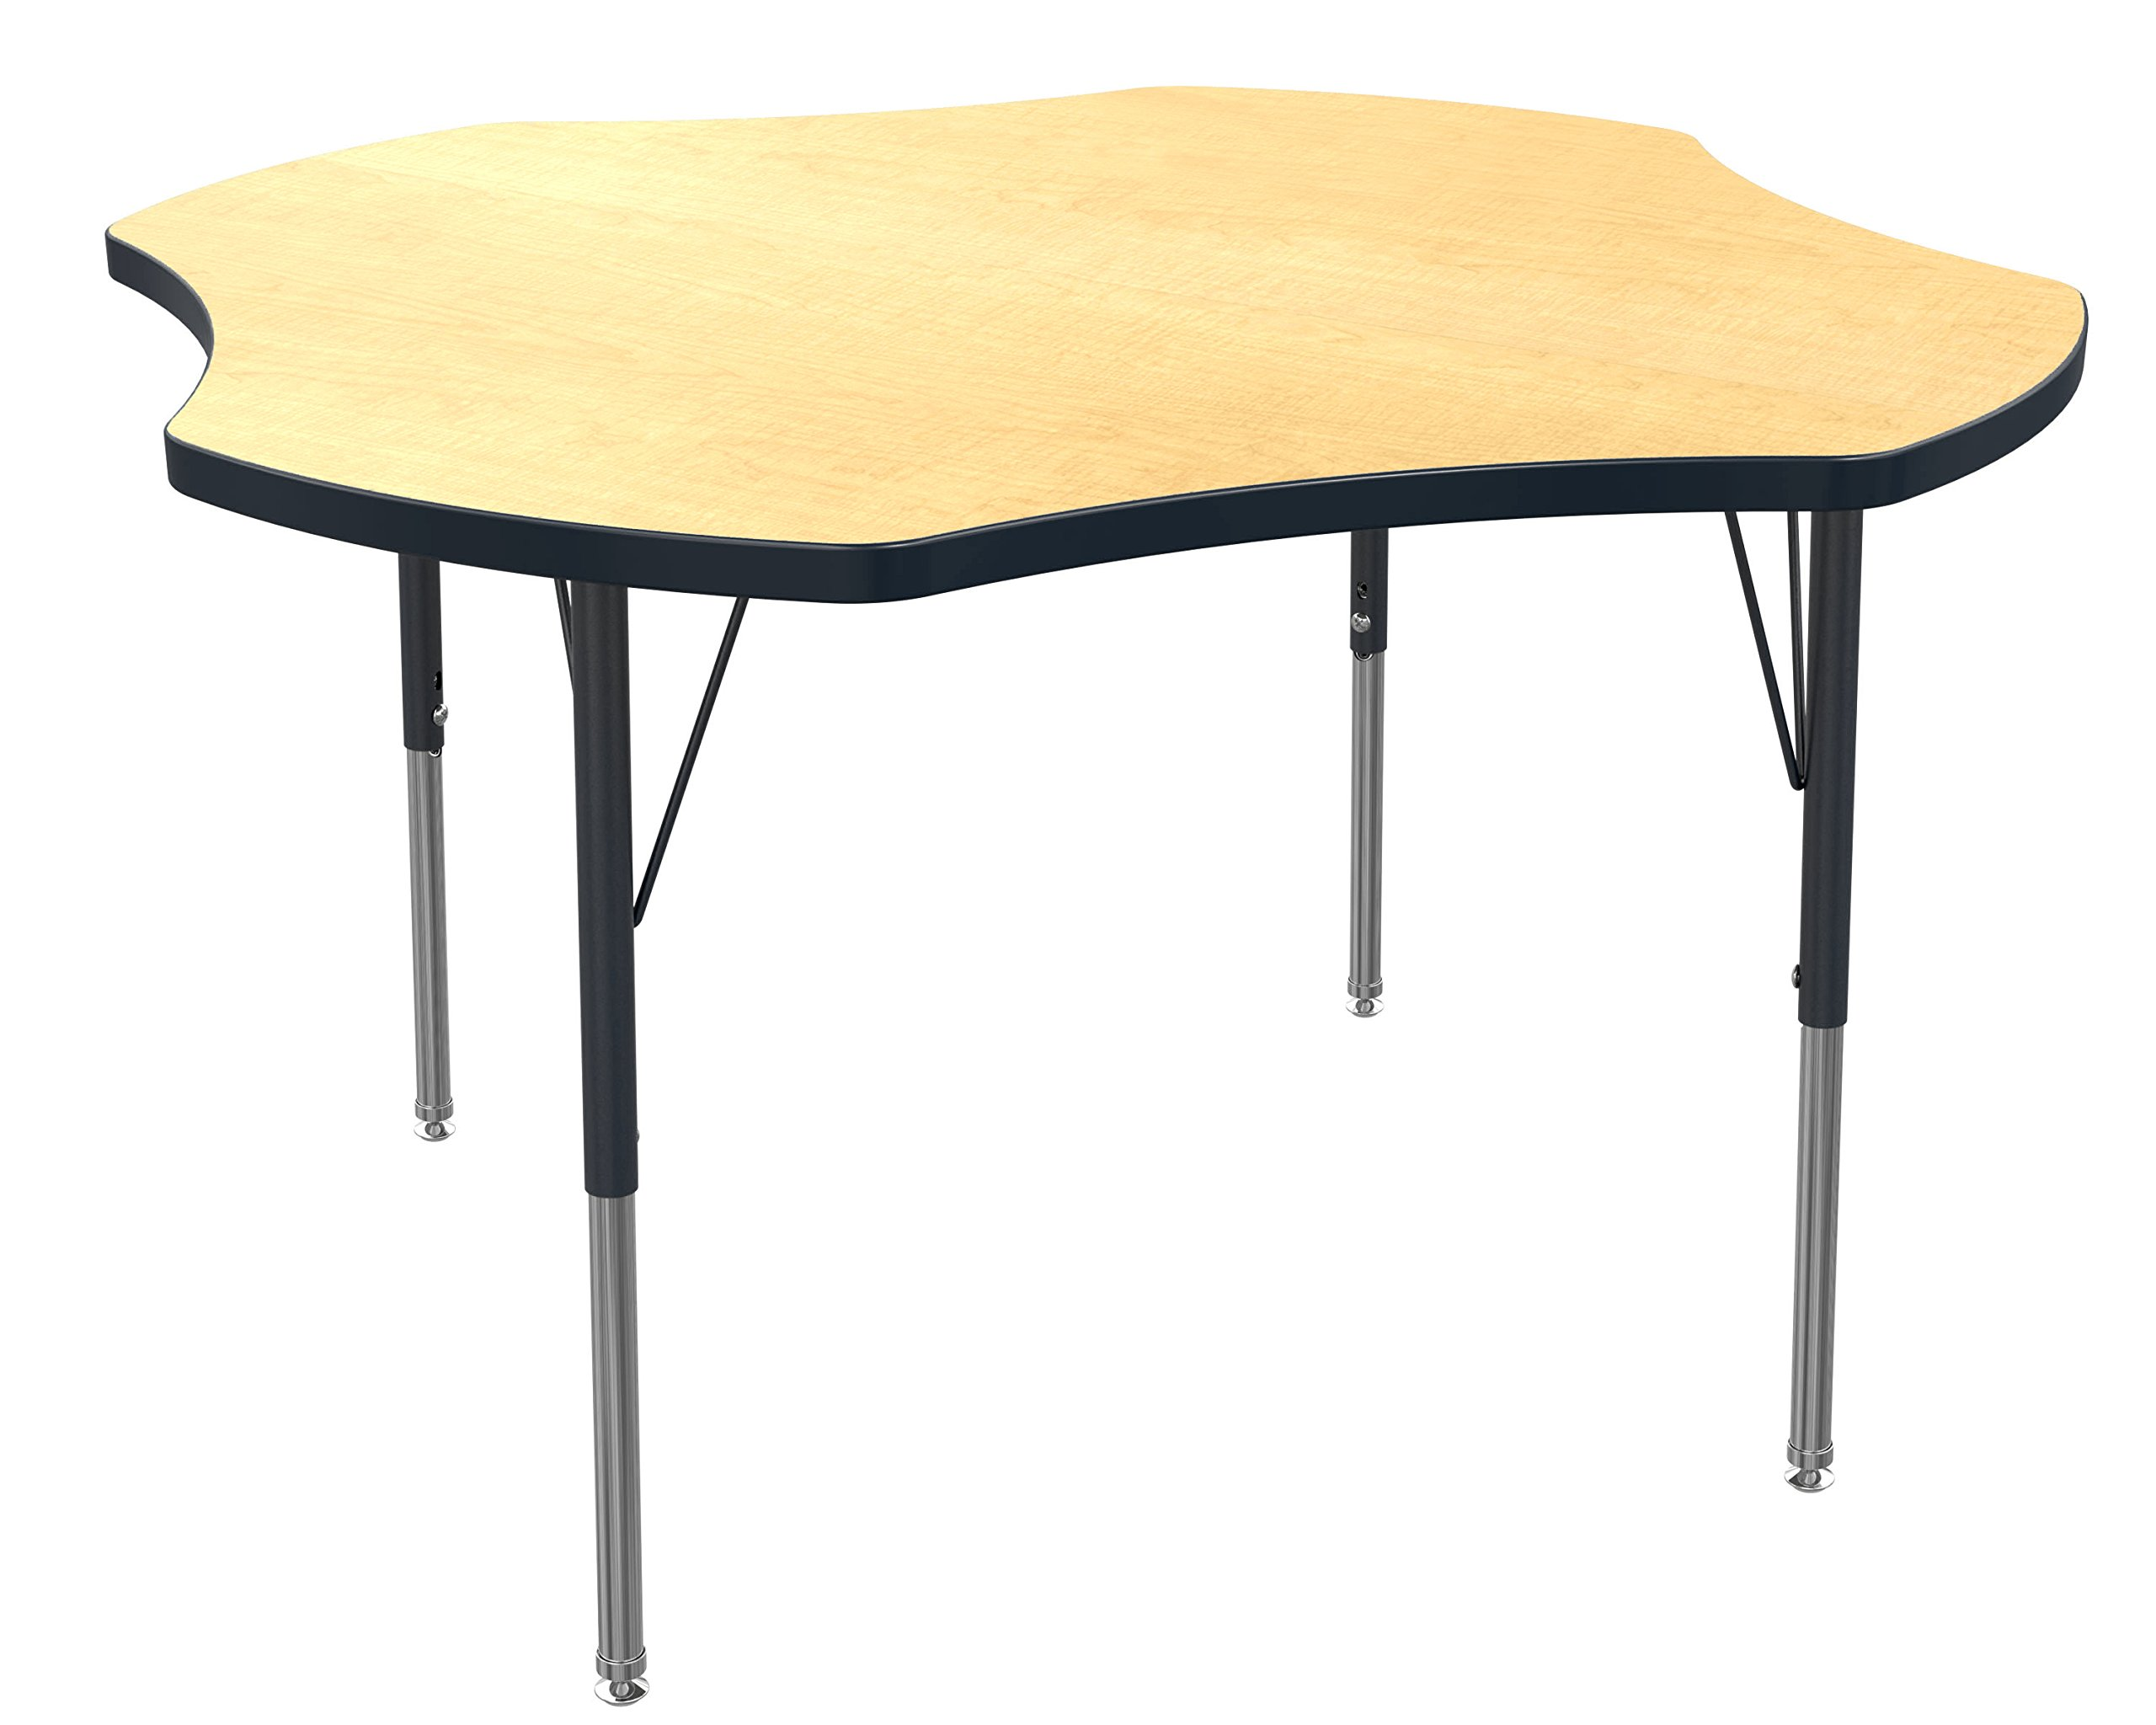 Marco Group    AMG2265-50-BBLK 48'' Clover Shaped Classroom Table  Adjustable Height (21''-30'') Standard Size Legs,  Fusion Maple-Top, Black-Edge by Marco Group